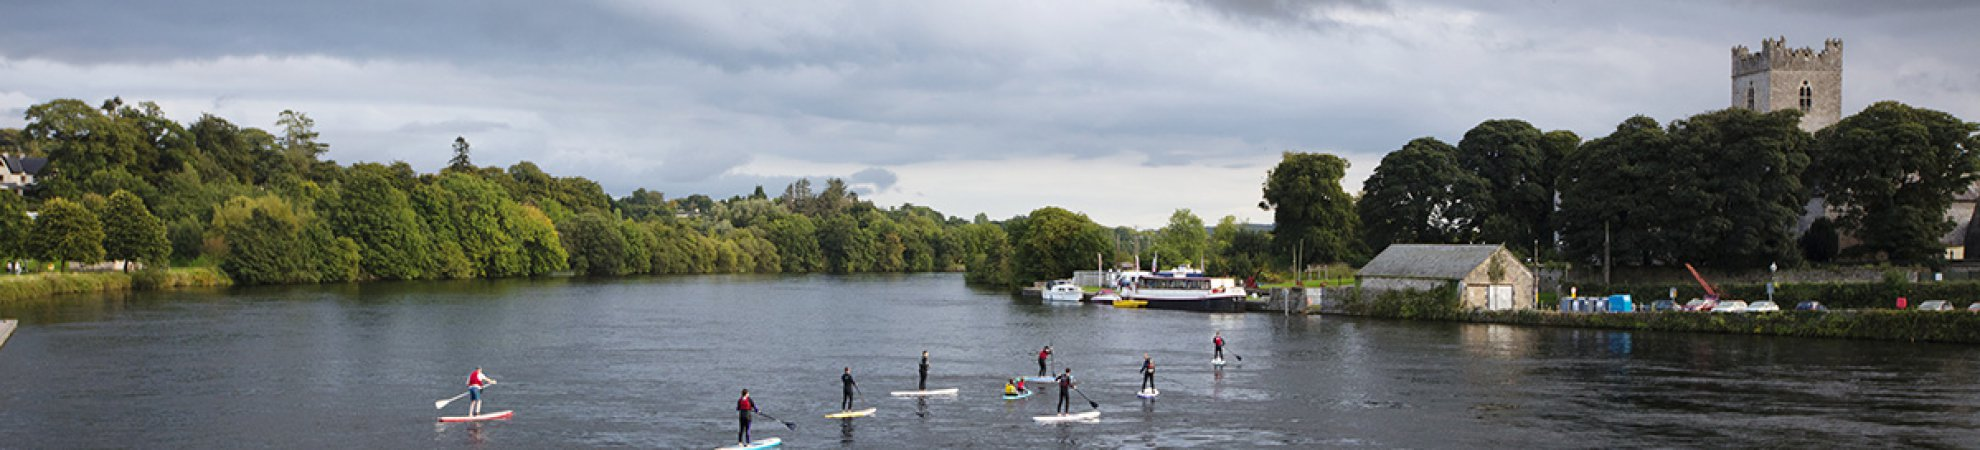 Lough derg blueway things to do (4)